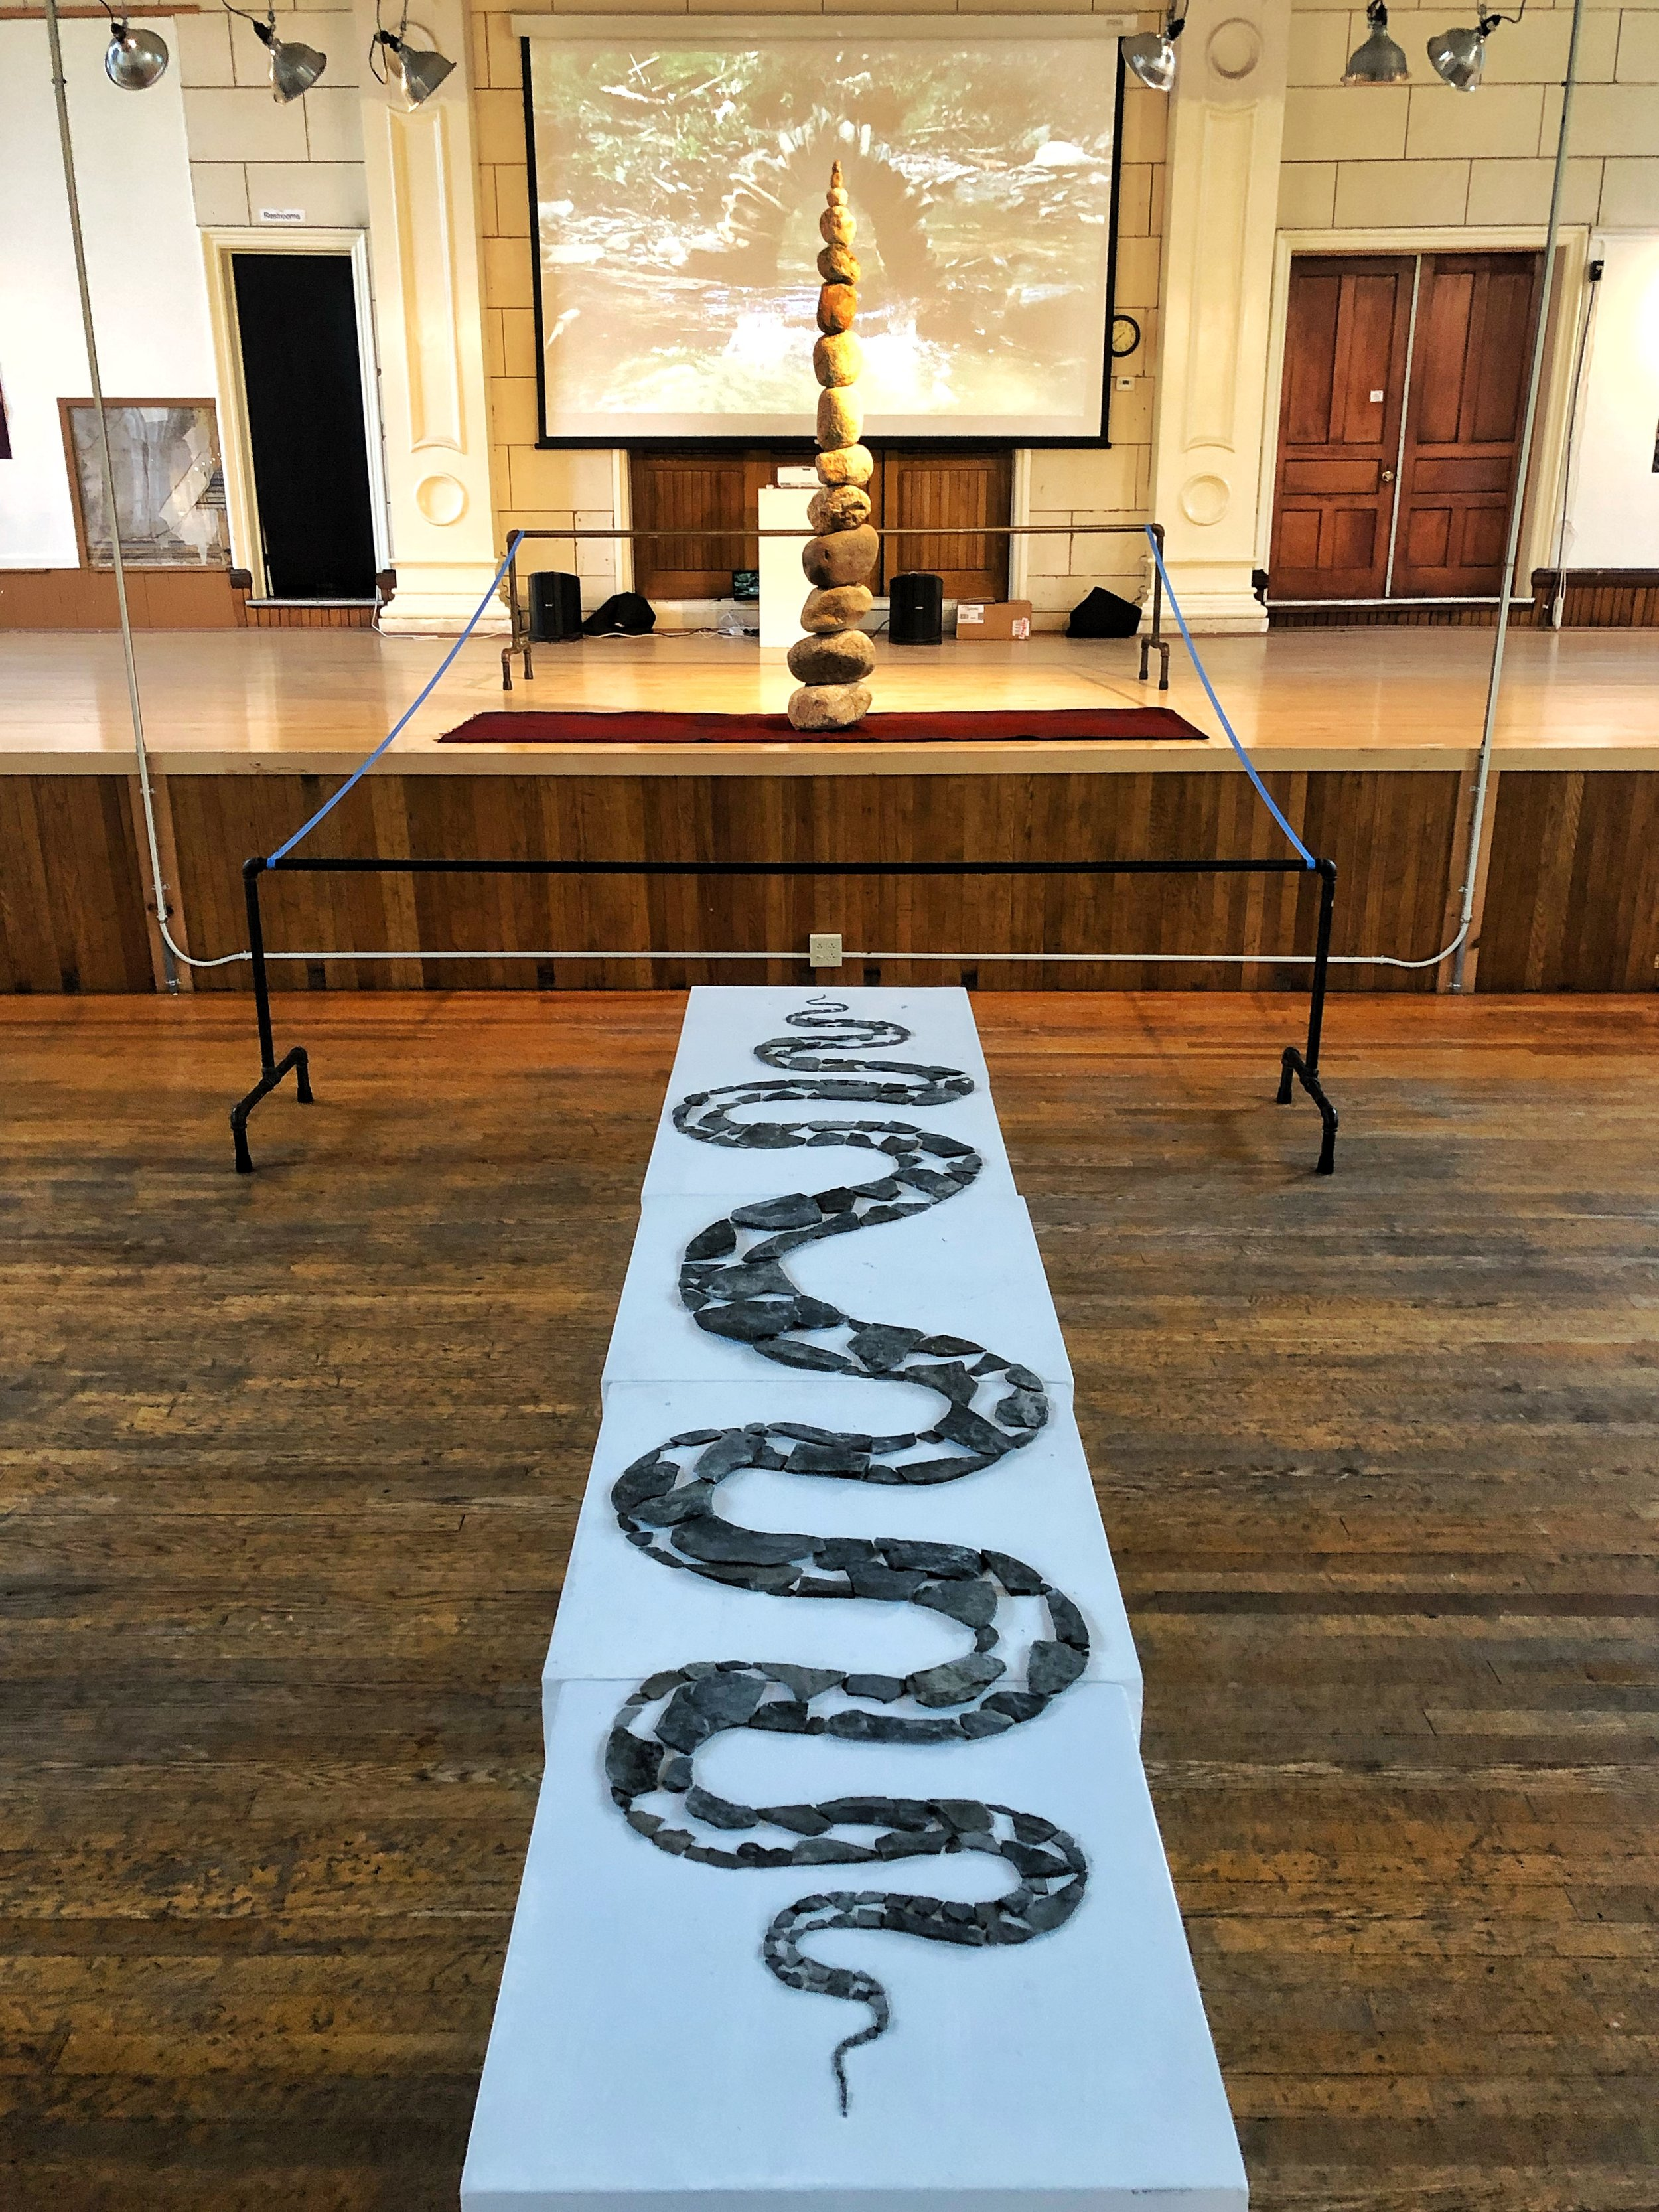 Solo Exhibition - Trumansburg Conservatory ofFine Arts - On Display: 29 prints, 1 video installation, 2 copies of Land Art book, 2 site specific indoor installations, 1 site specific outdoor installation* Currently on display through August 20th, 2019 *